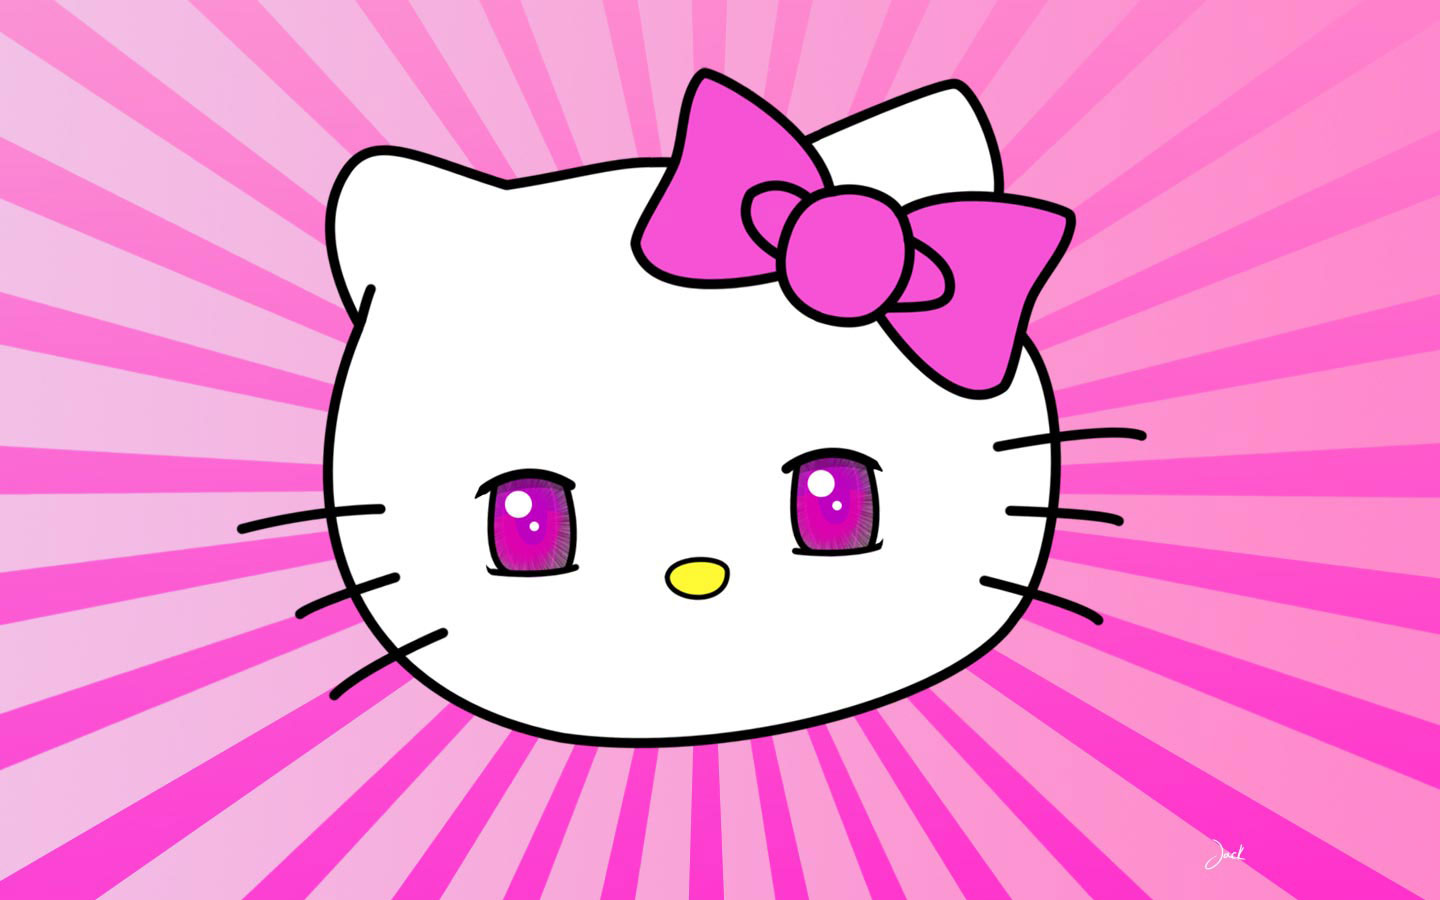 Pink Hello Kitty Wallpaper Auto Design Tech 1440x900